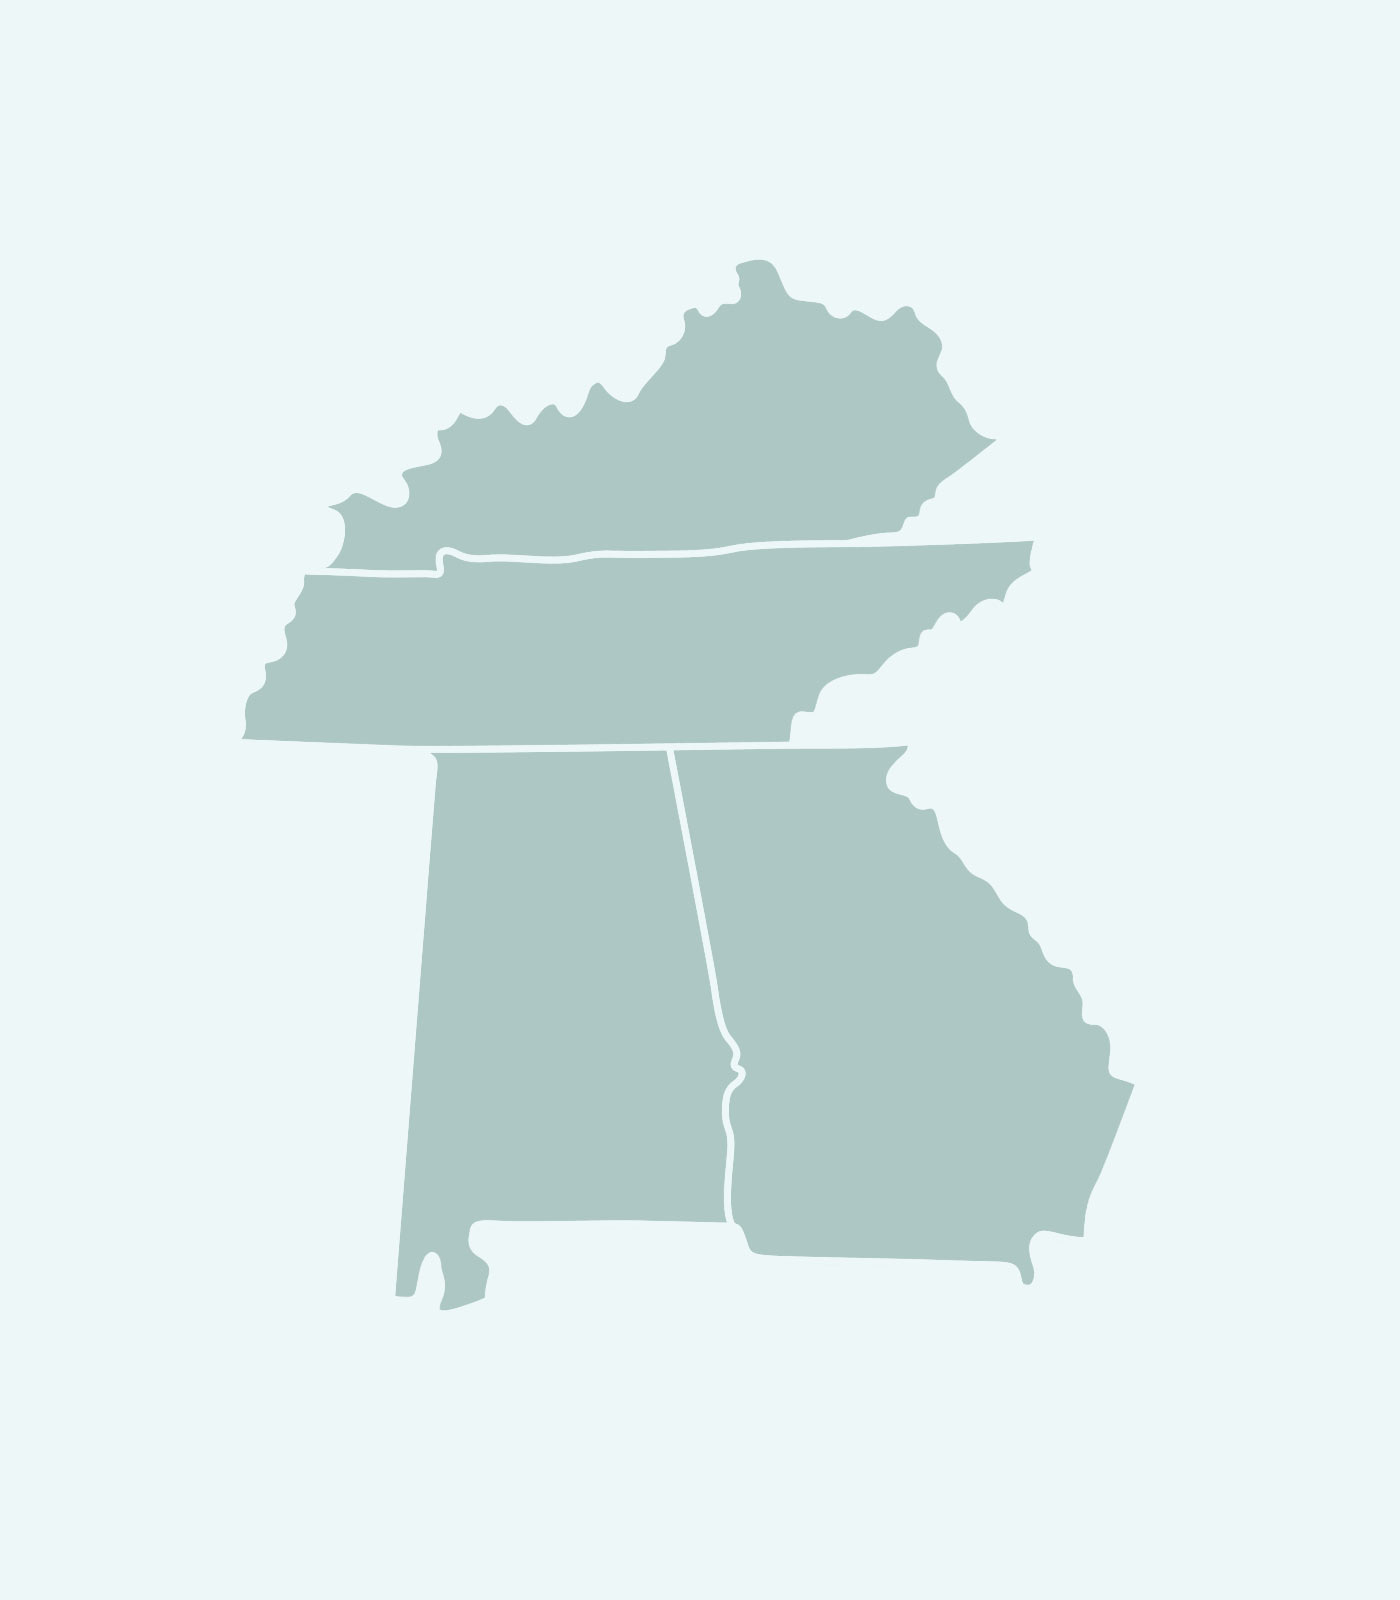 Sales Rep's Map of Tennessee, Kentucky, Alabama, Georgia Line Keren Hart